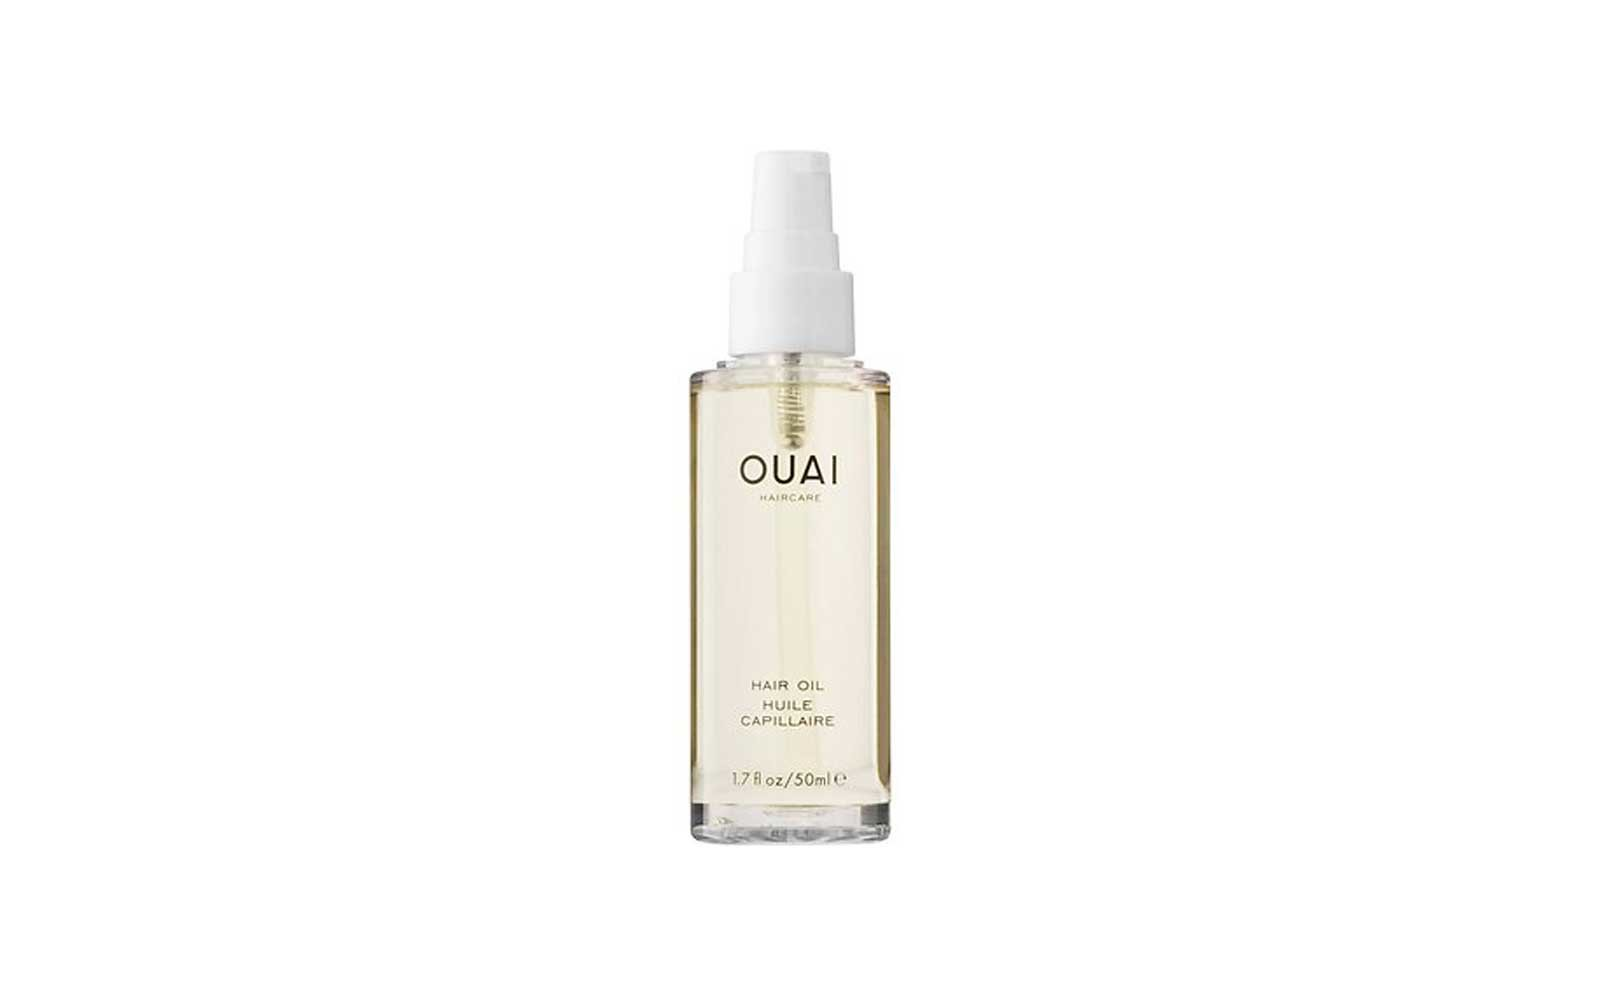 Oaui Hair Oil